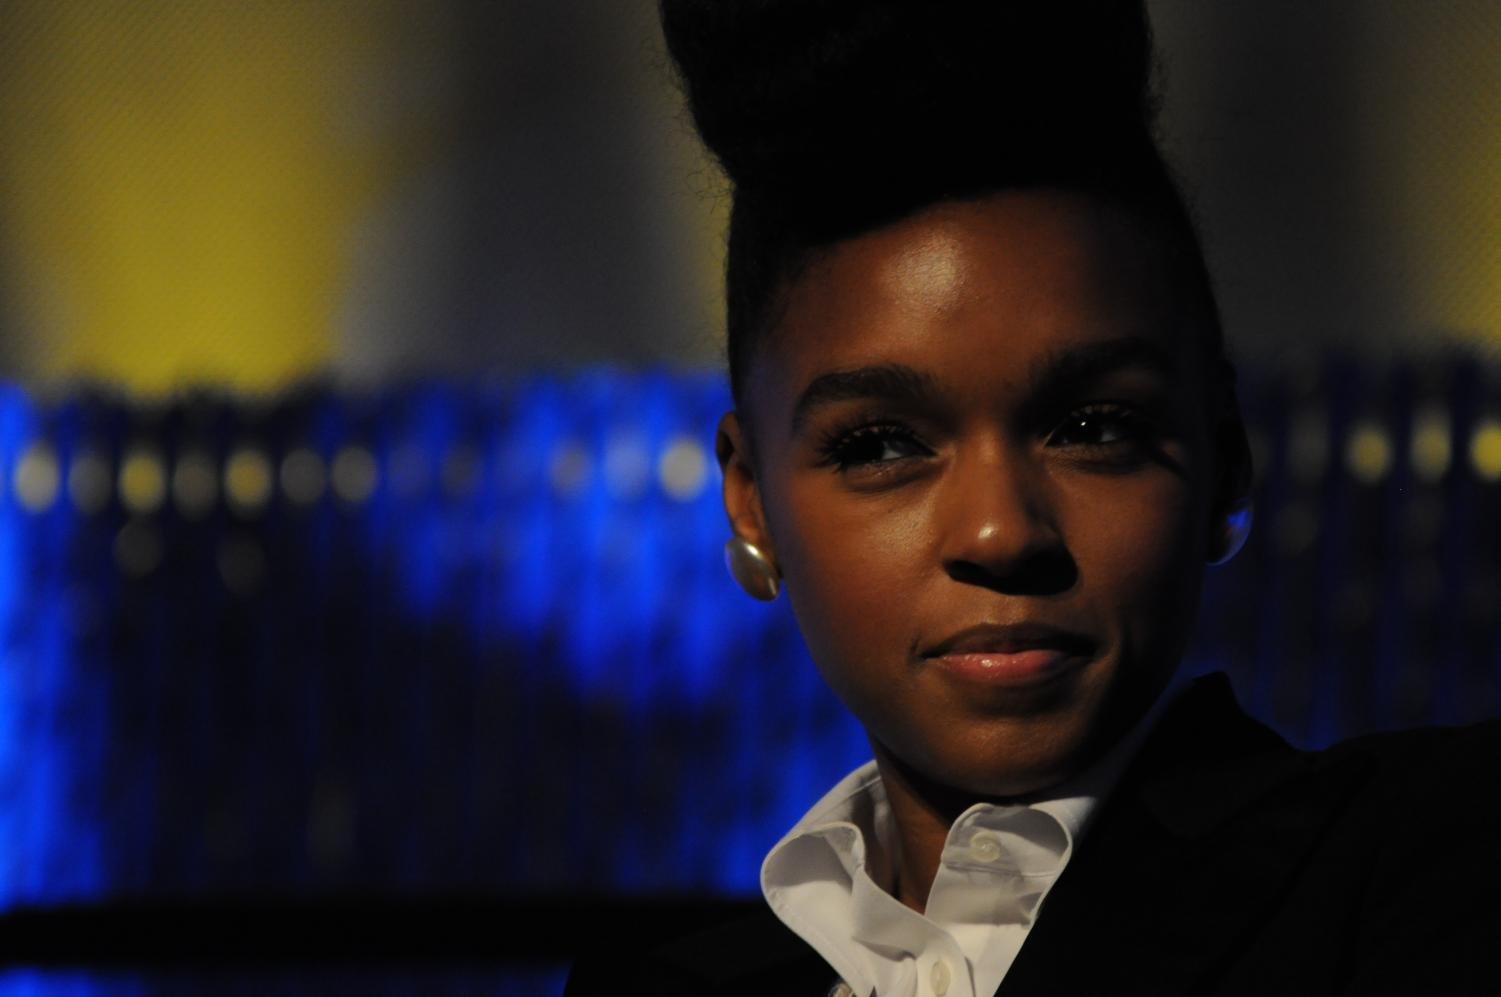 GIRL POWER: Janelle Monáe is one of the year's most celebrated female artists, with her third studio album,